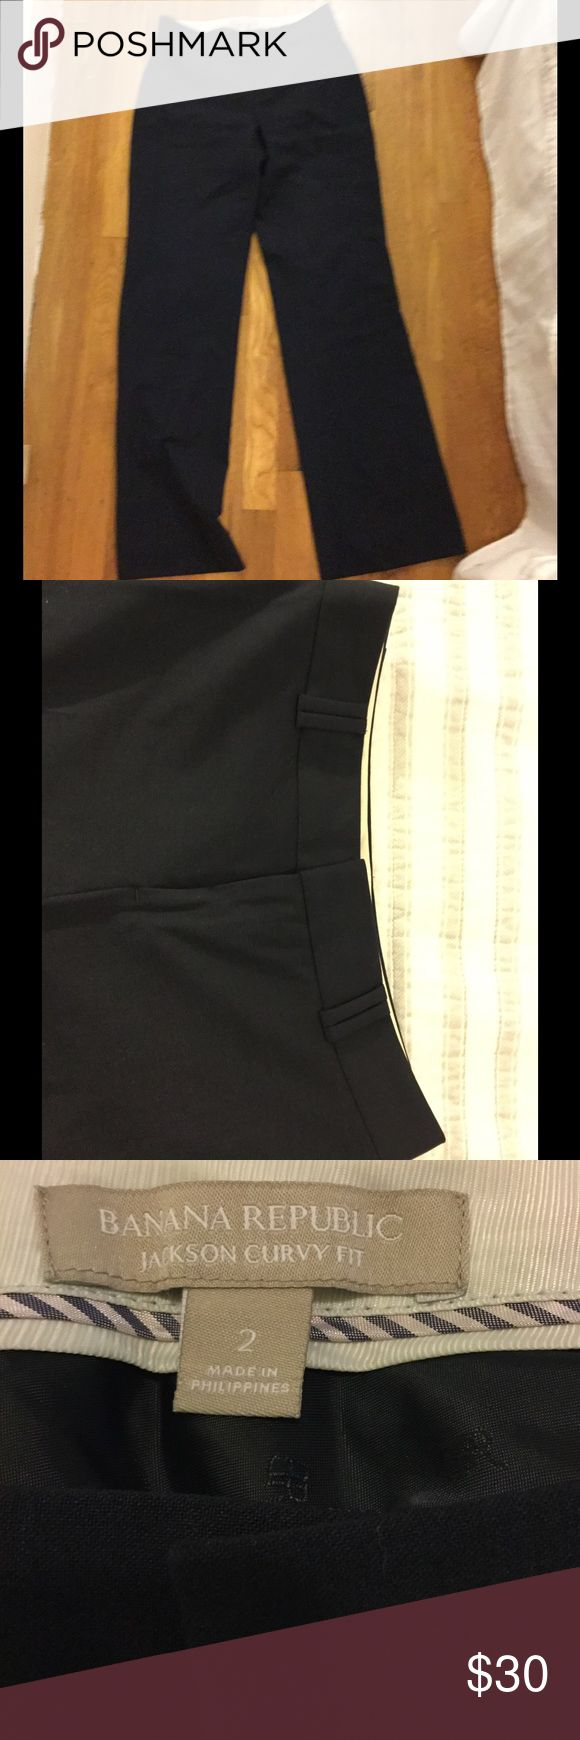 Banana Republic Jackson Curvy Fit navy suit pants Banana Republic Jackson Curvy Fit navy blue suit pants. In like new condition. Only worn handful of times. Banana Republic Pants Trousers